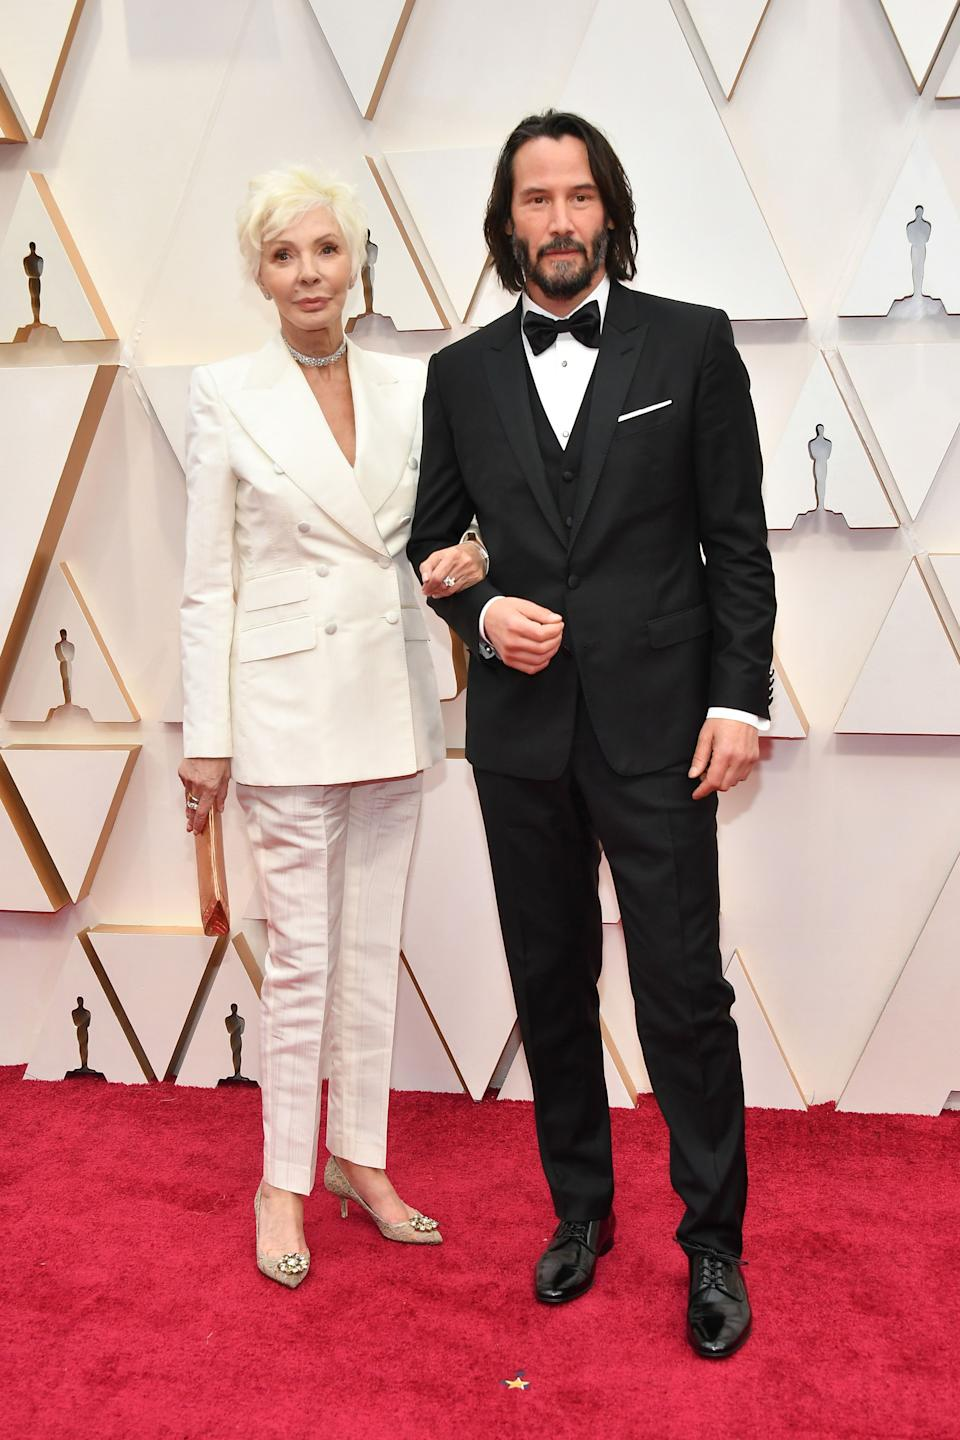 The Canadian actor and Oscars presenter brought a very special date for this year's awards - his mother!